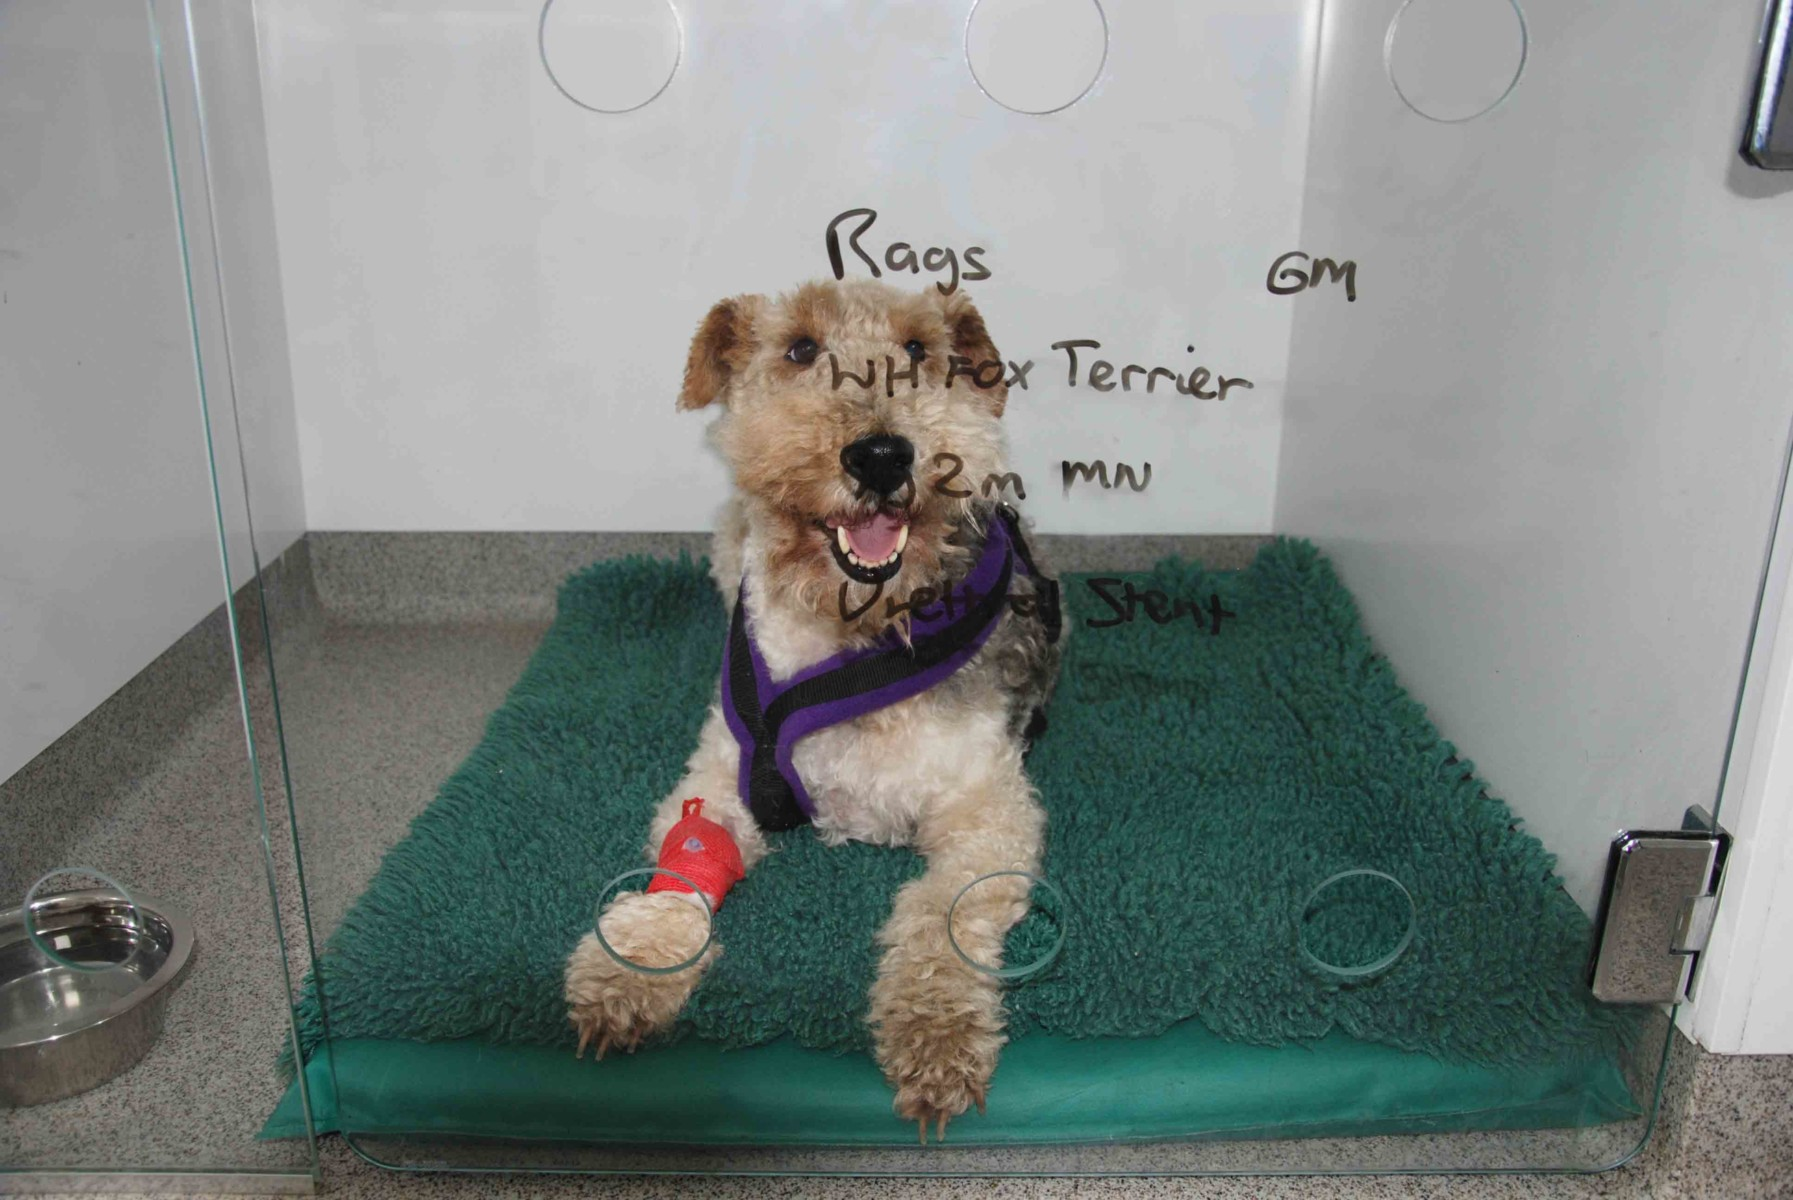 Wire Hair Fox Terrier Rags in kennels before surgery